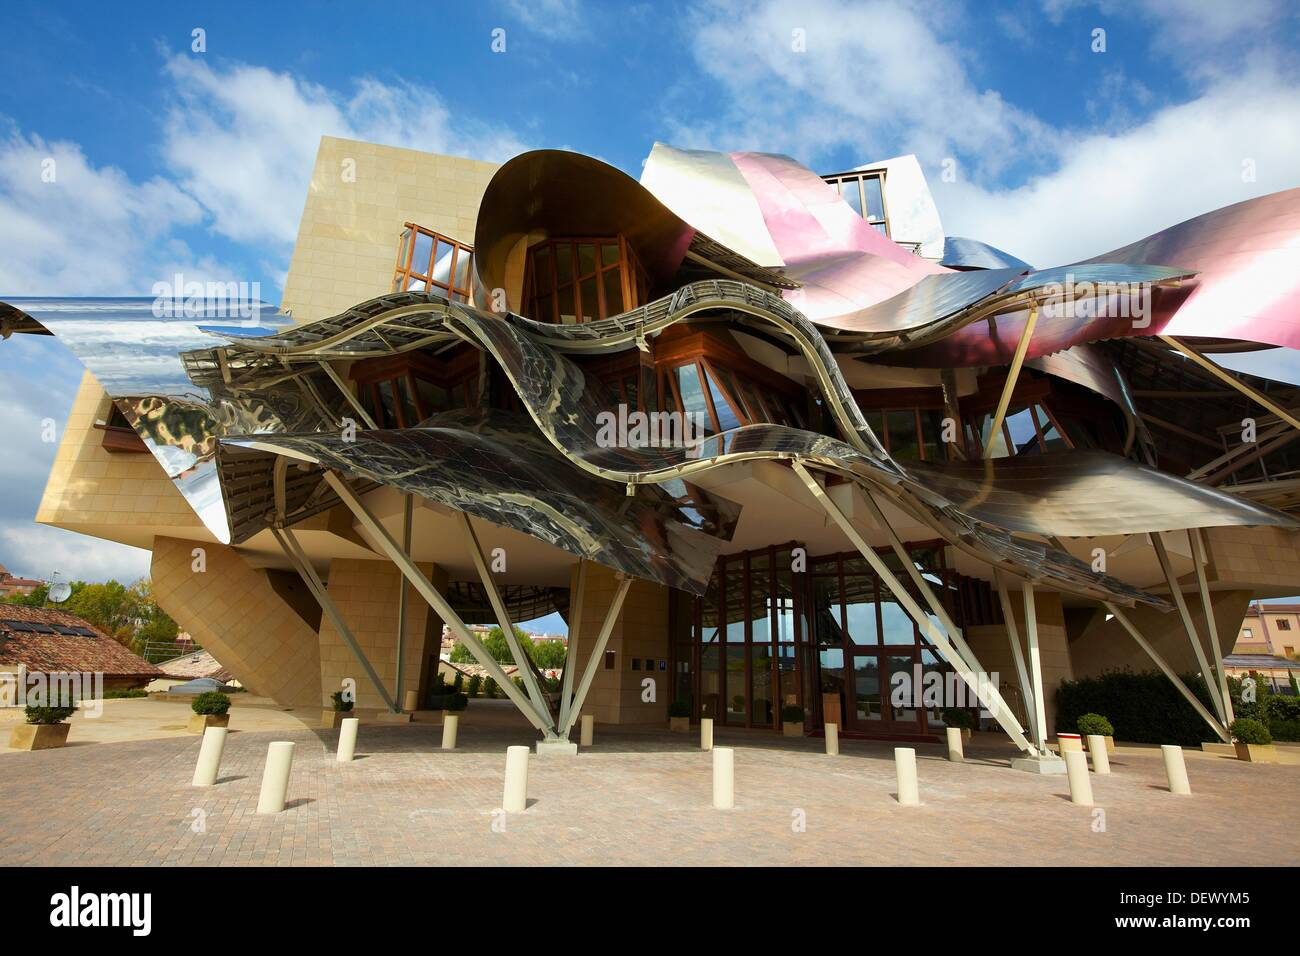 Hotel designed by frank gehry bodegas marques de riscal for Bodegas marques de riscal